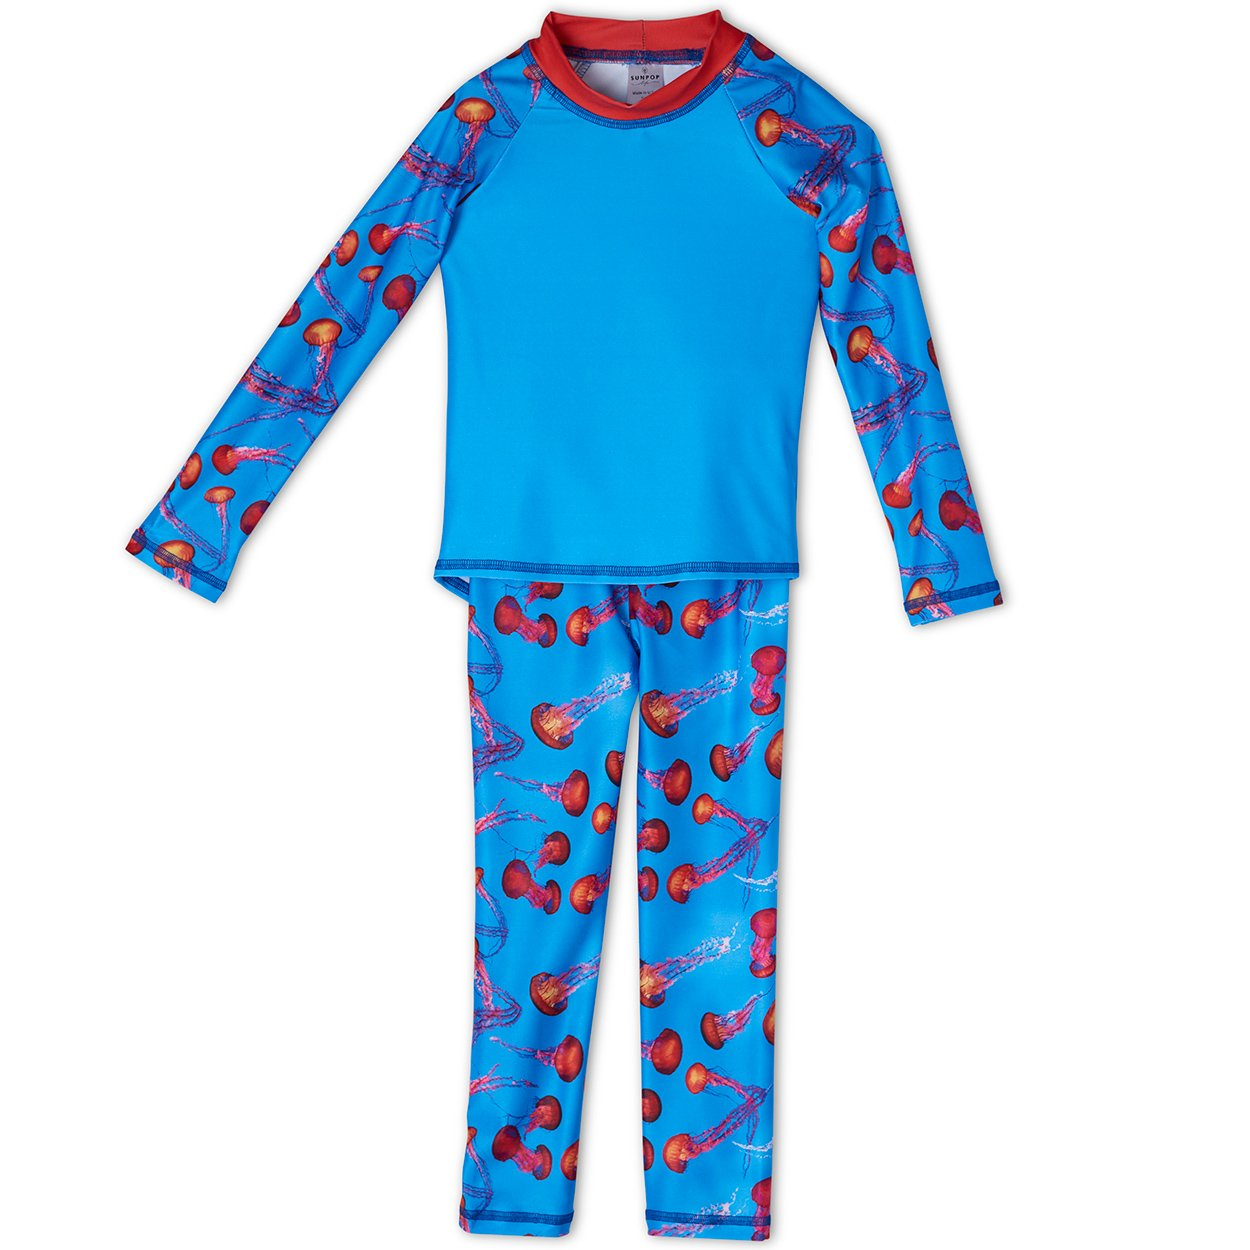 Red Jellyfish 2-pc Rash Guard Set UPF 50+ for Boys